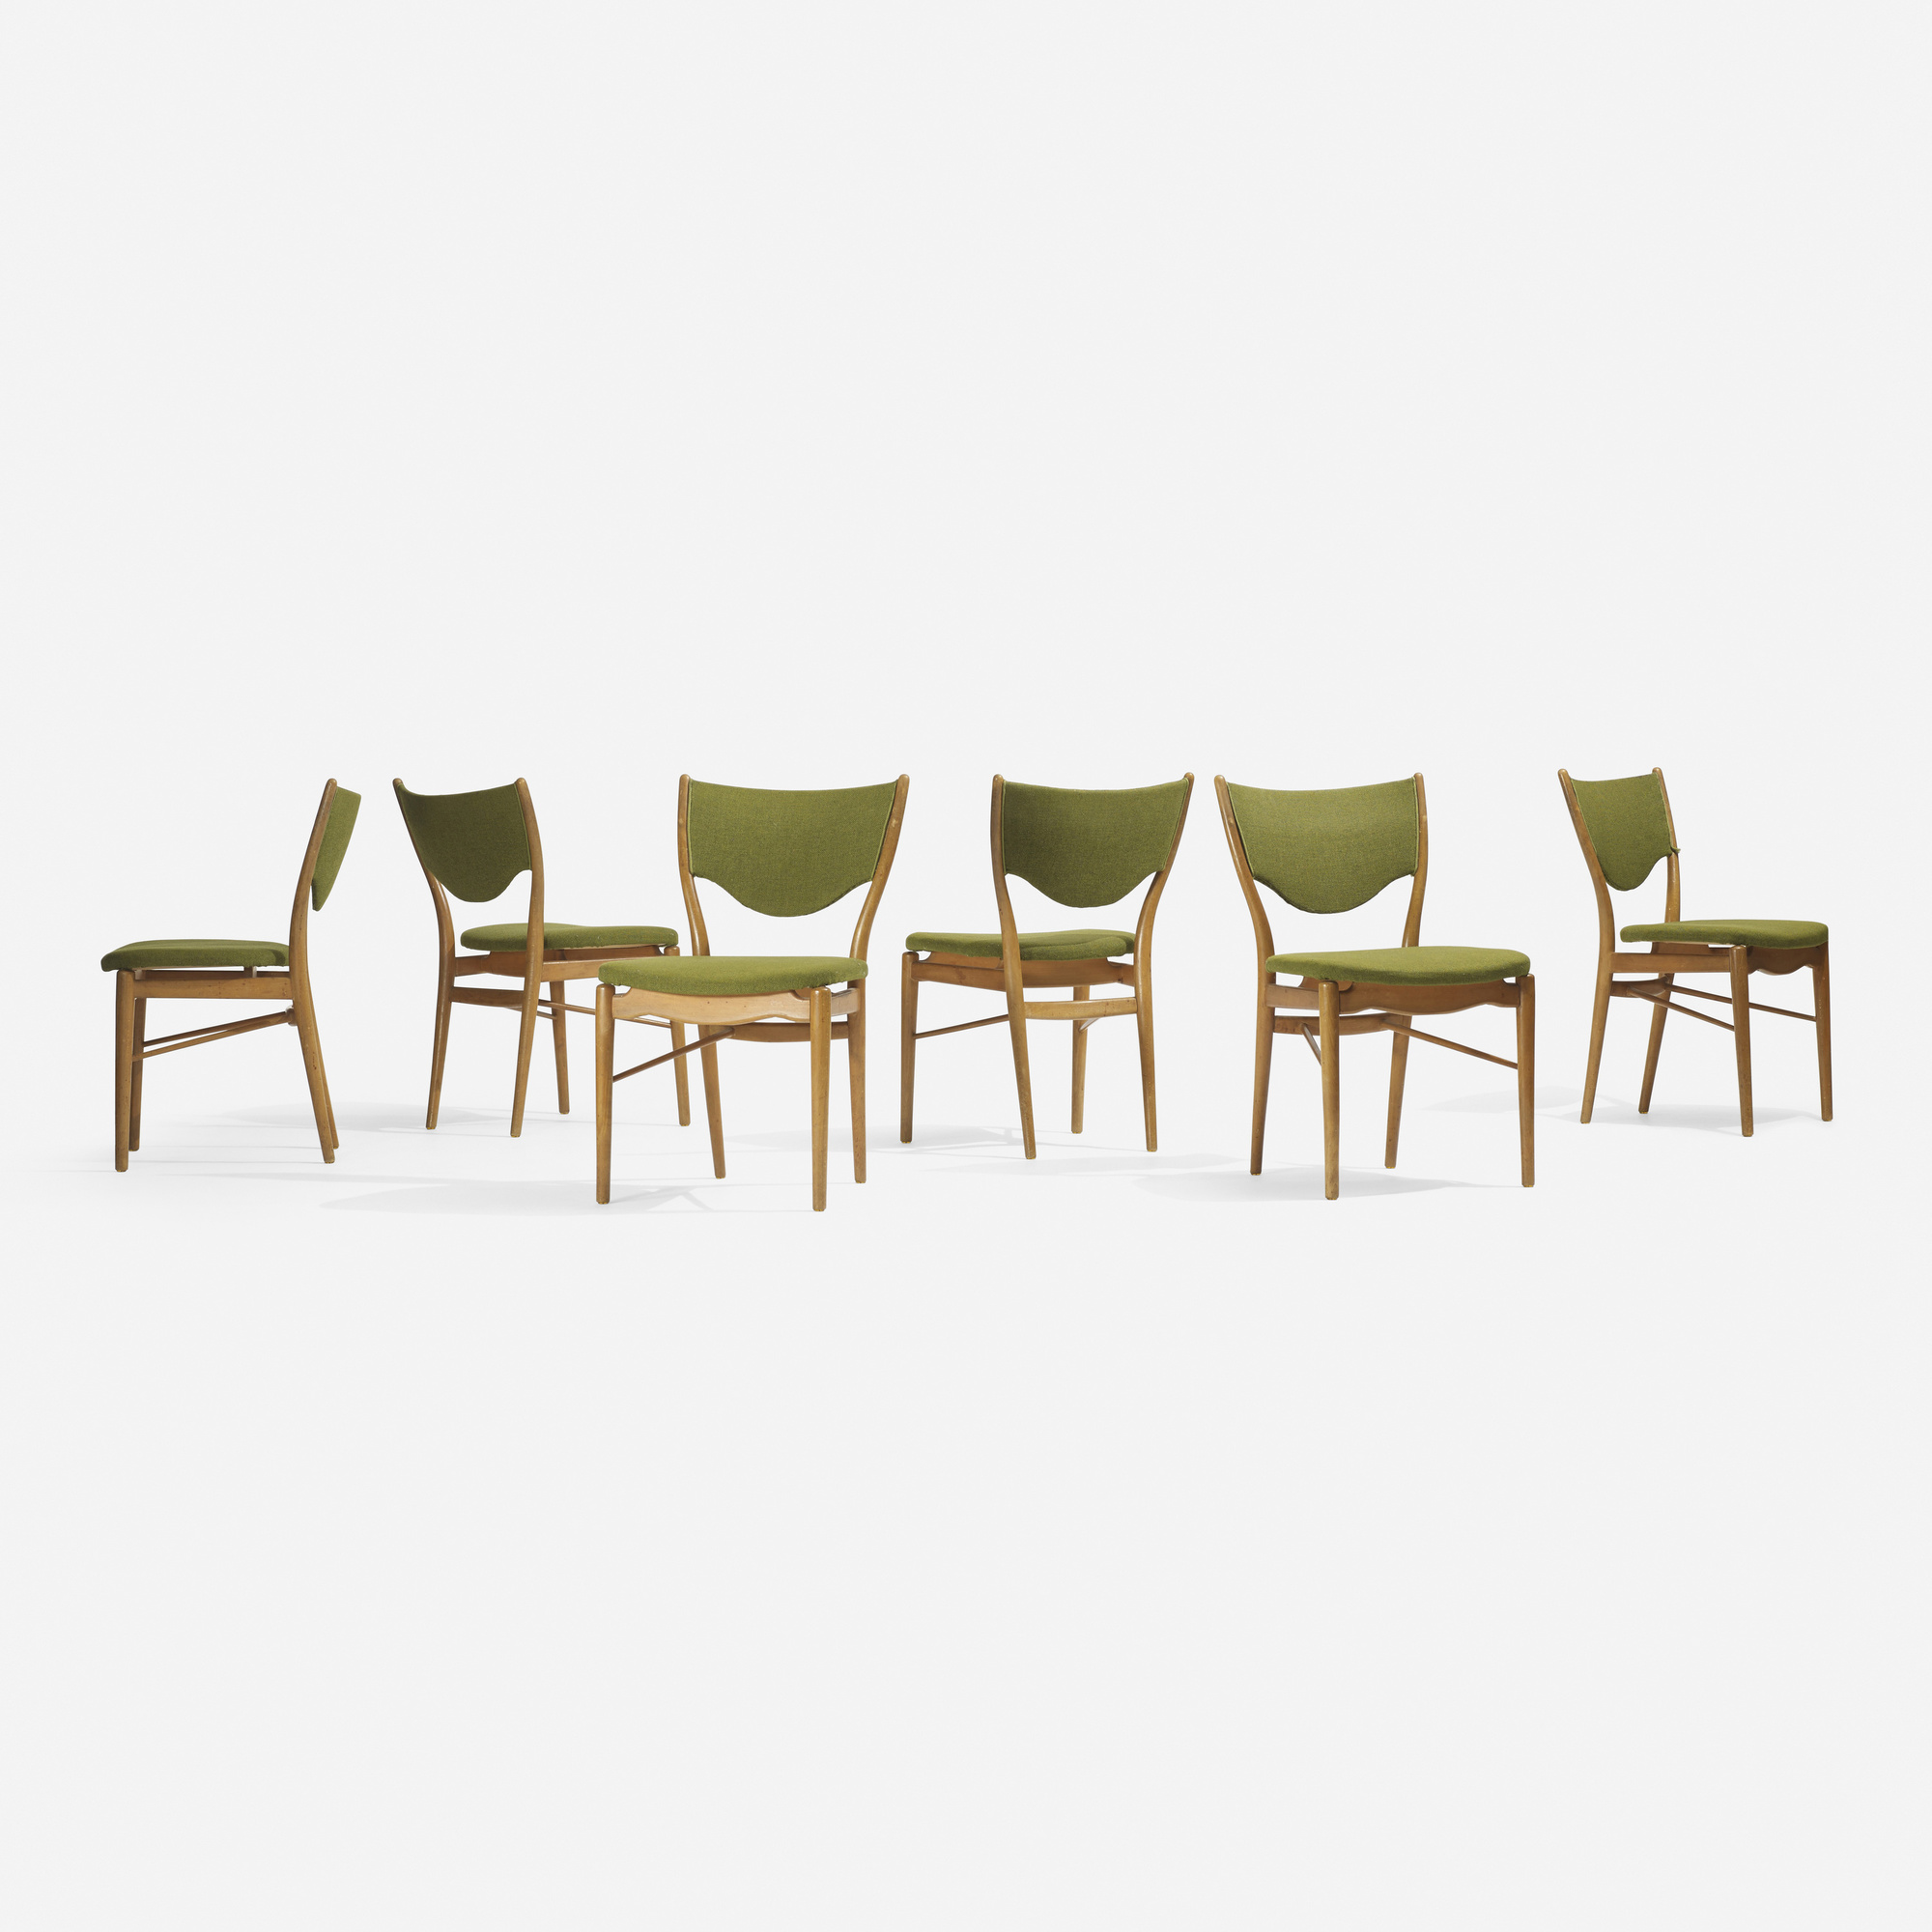 312: Finn Juhl / dining chairs, set of six (1 of 2)